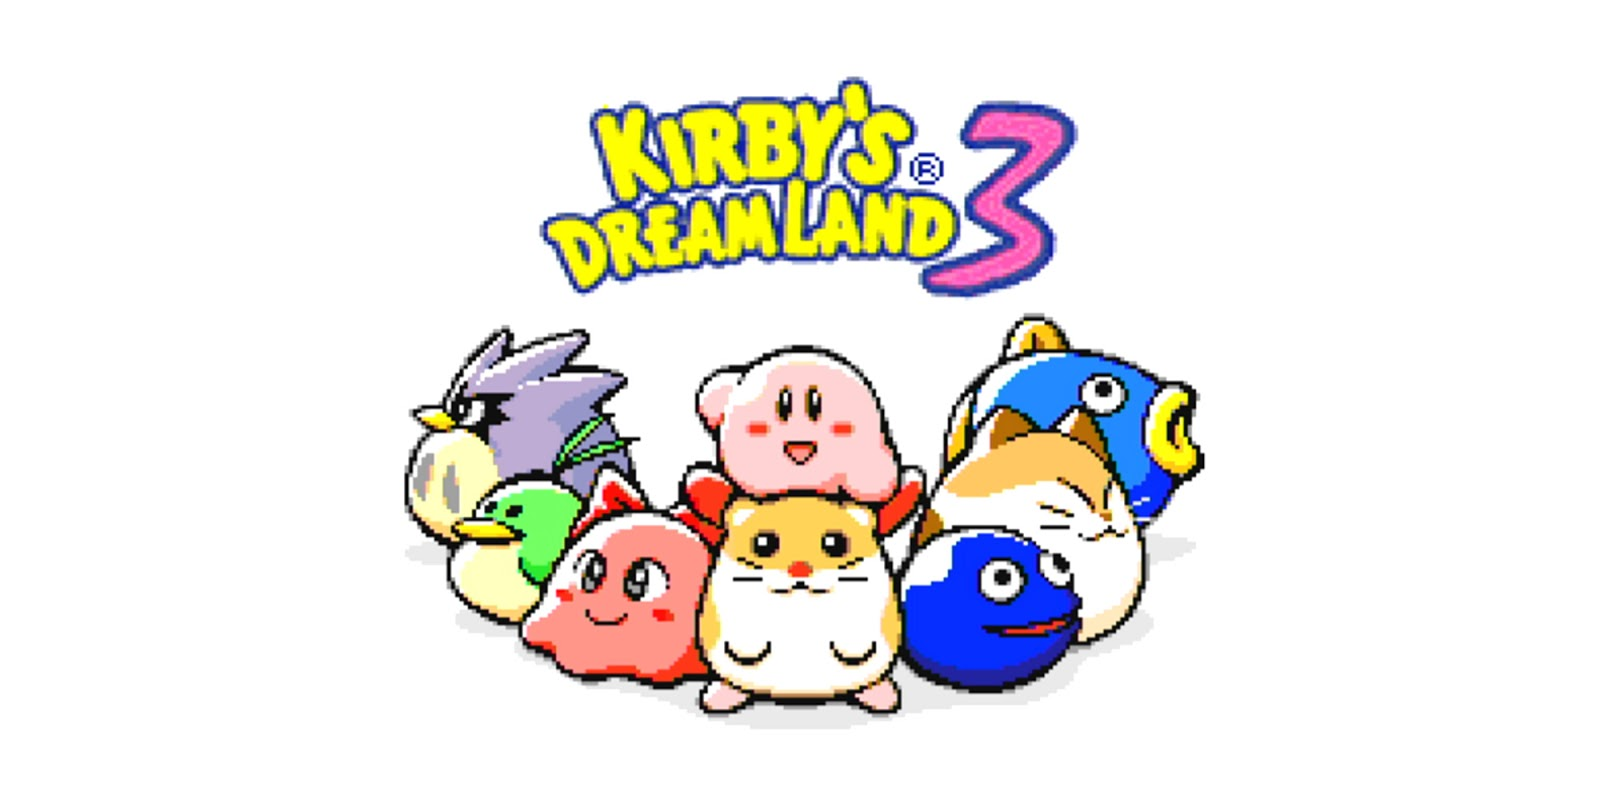 Kirby's Dream Land 3 (Super Nintendo Entertainment System, 1997)